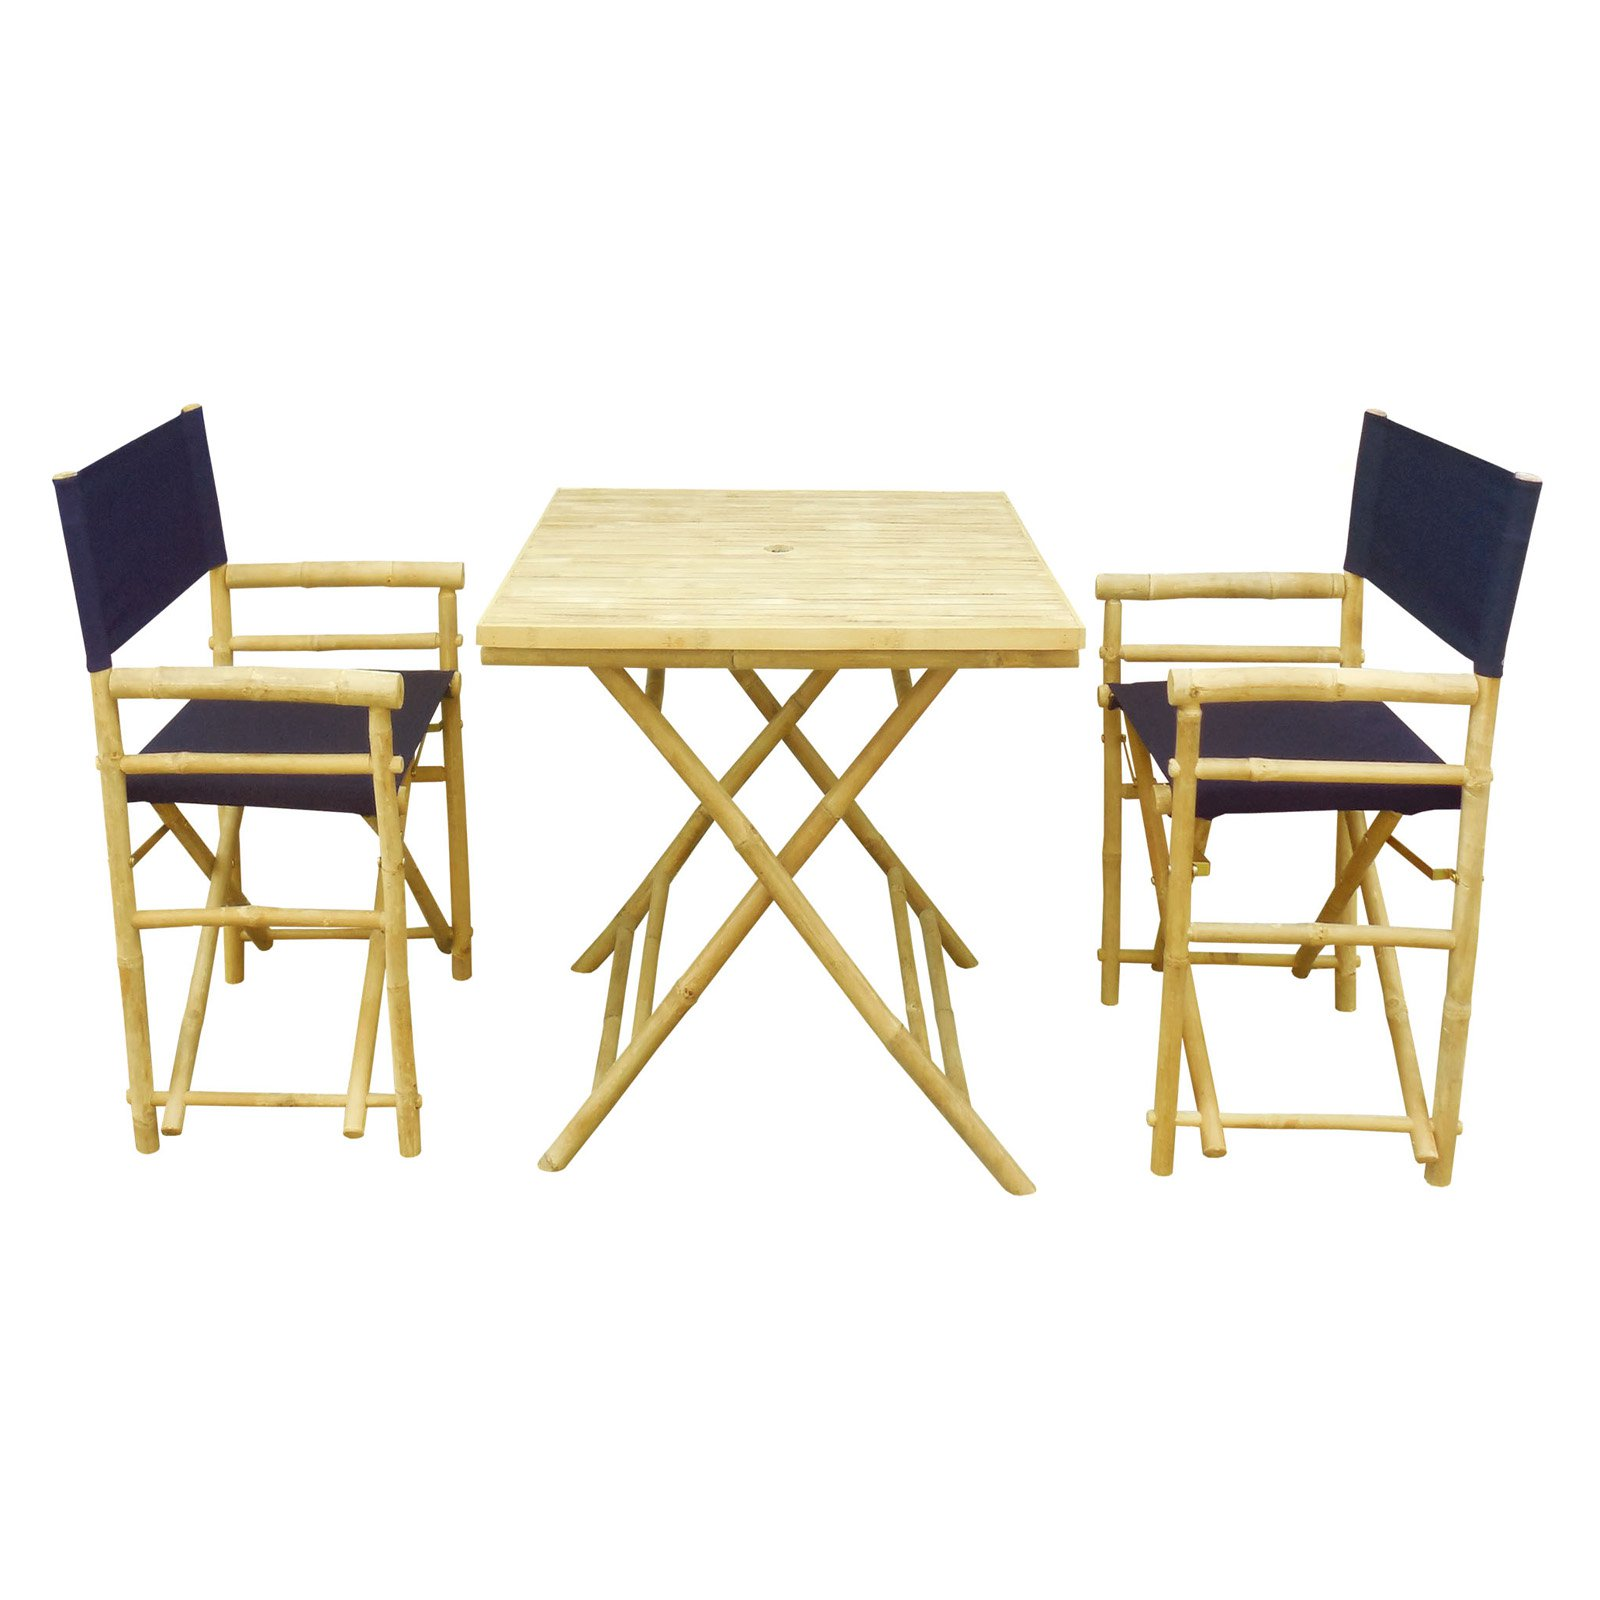 Zew Hand Crafted 3 Piece Square Folding Bamboo Patio Dini...